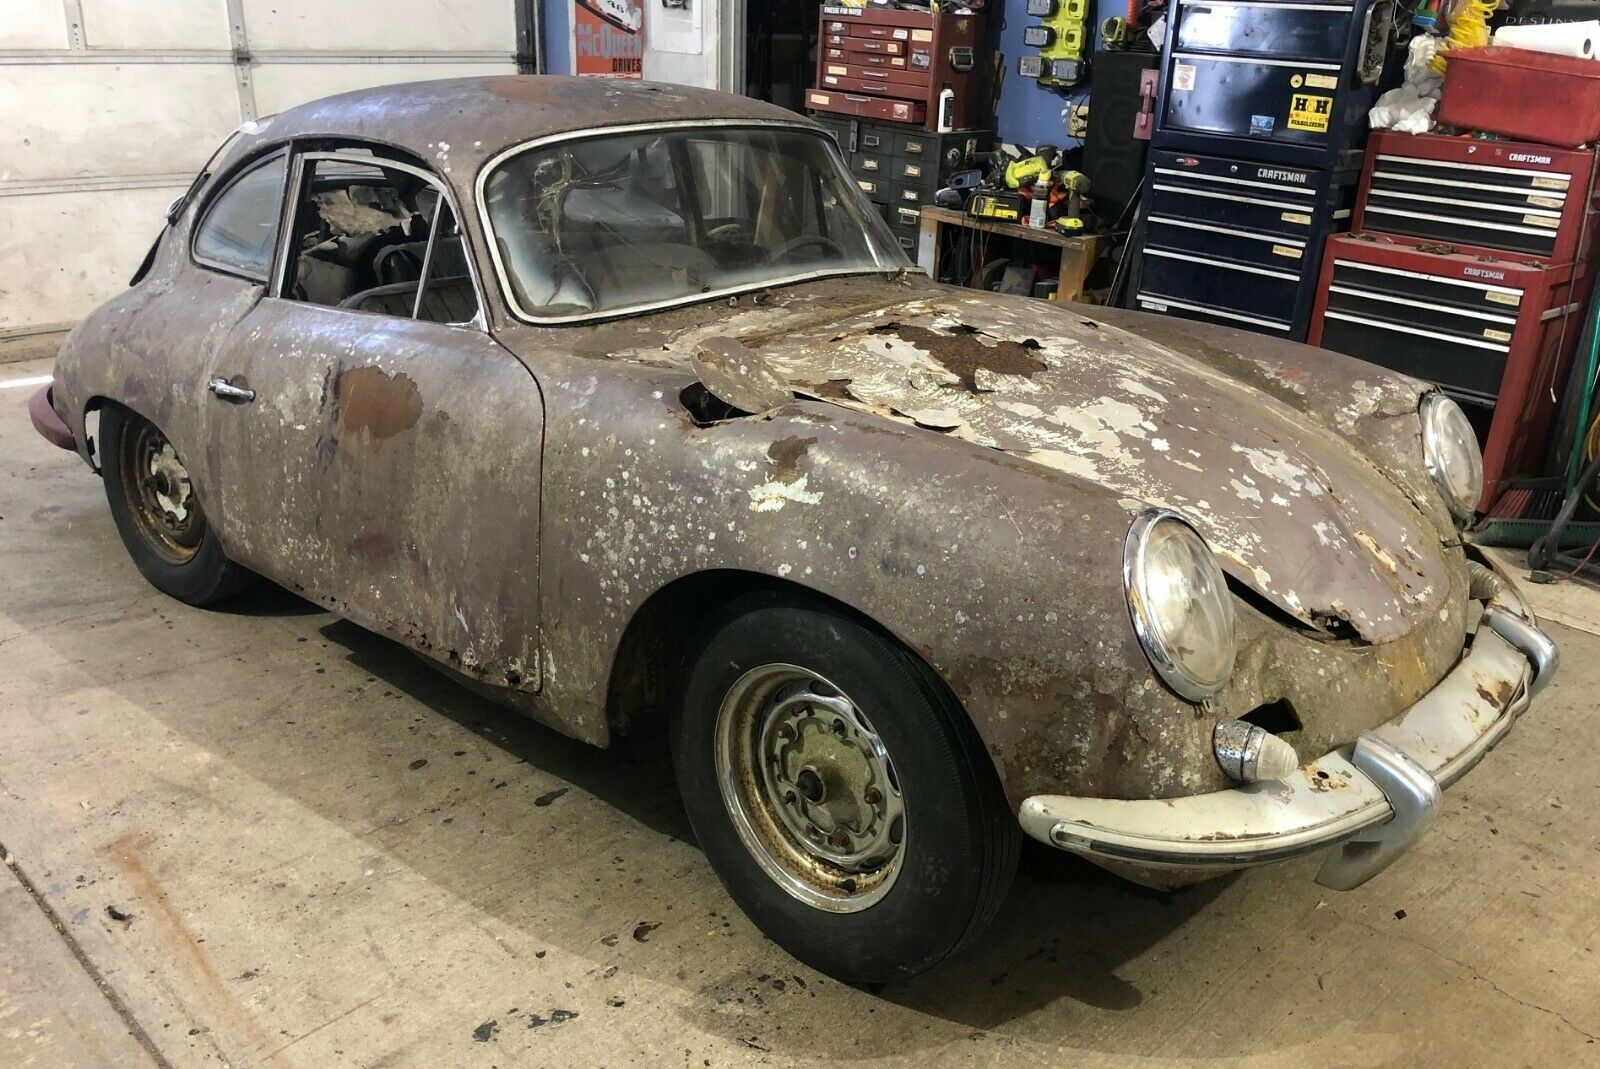 Rustbucket 1962 Porsche 356 Might Be the Nastiest Numbers